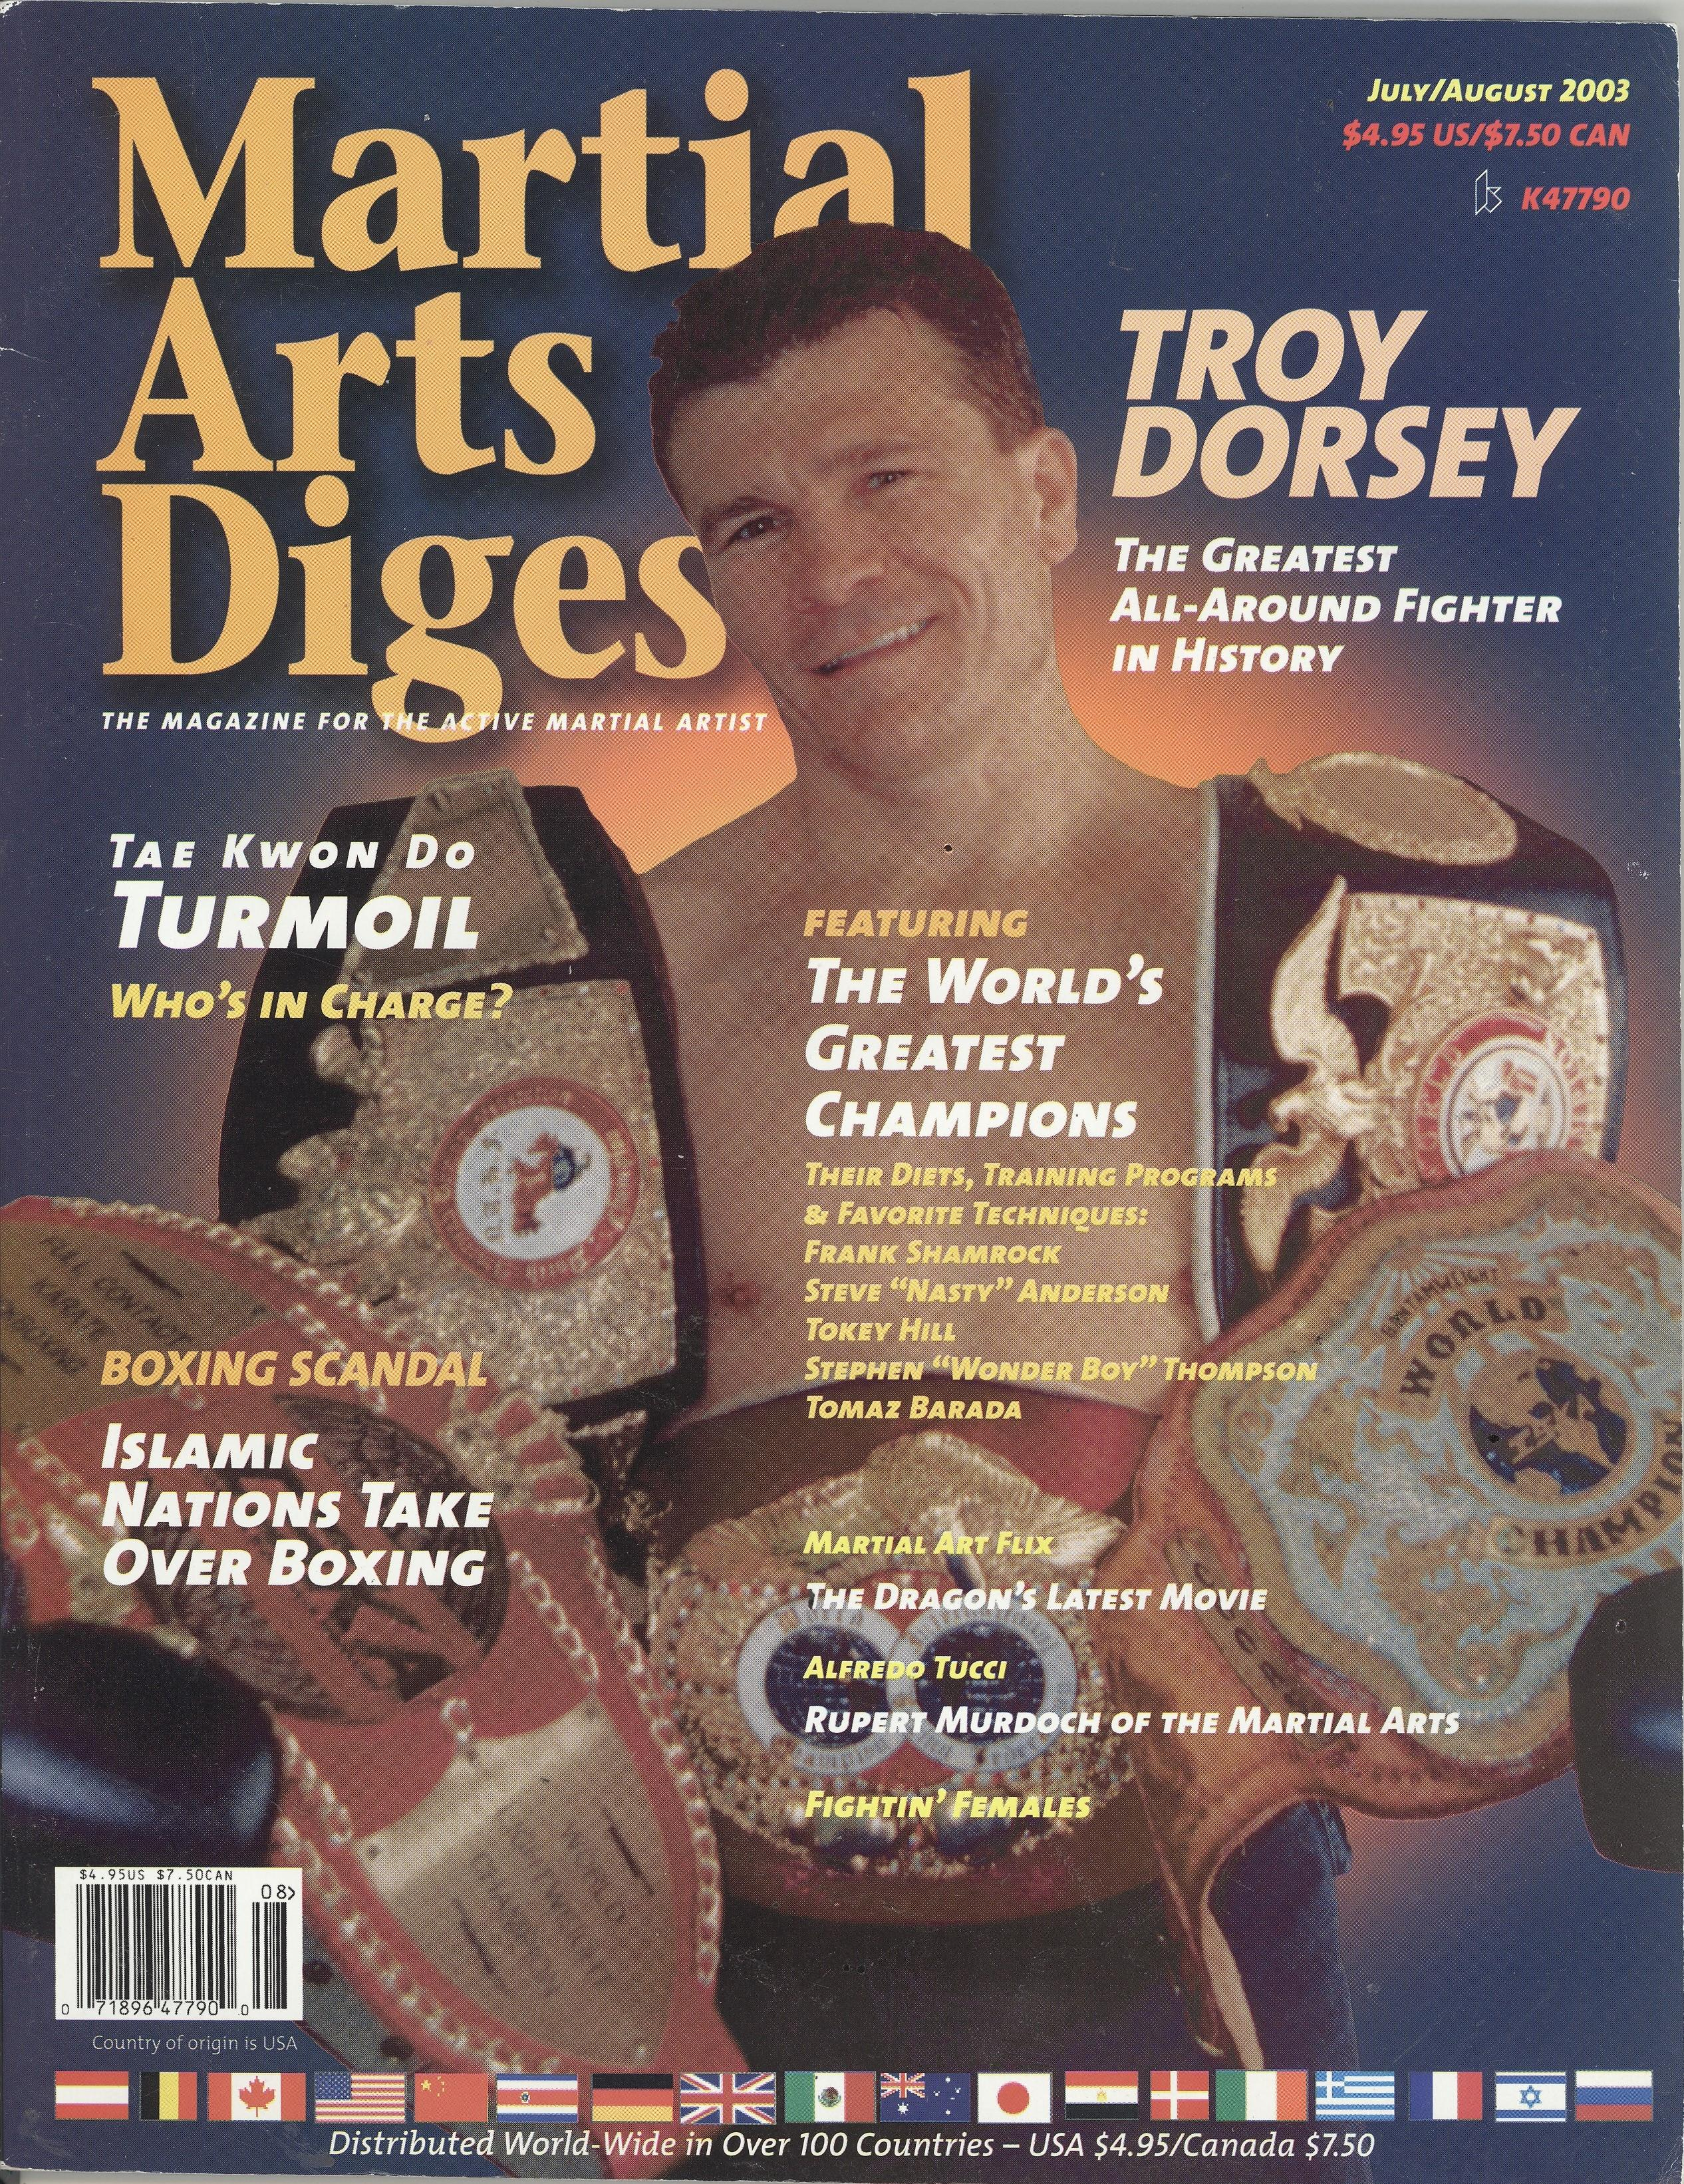 07/03 Martial Arts Digest